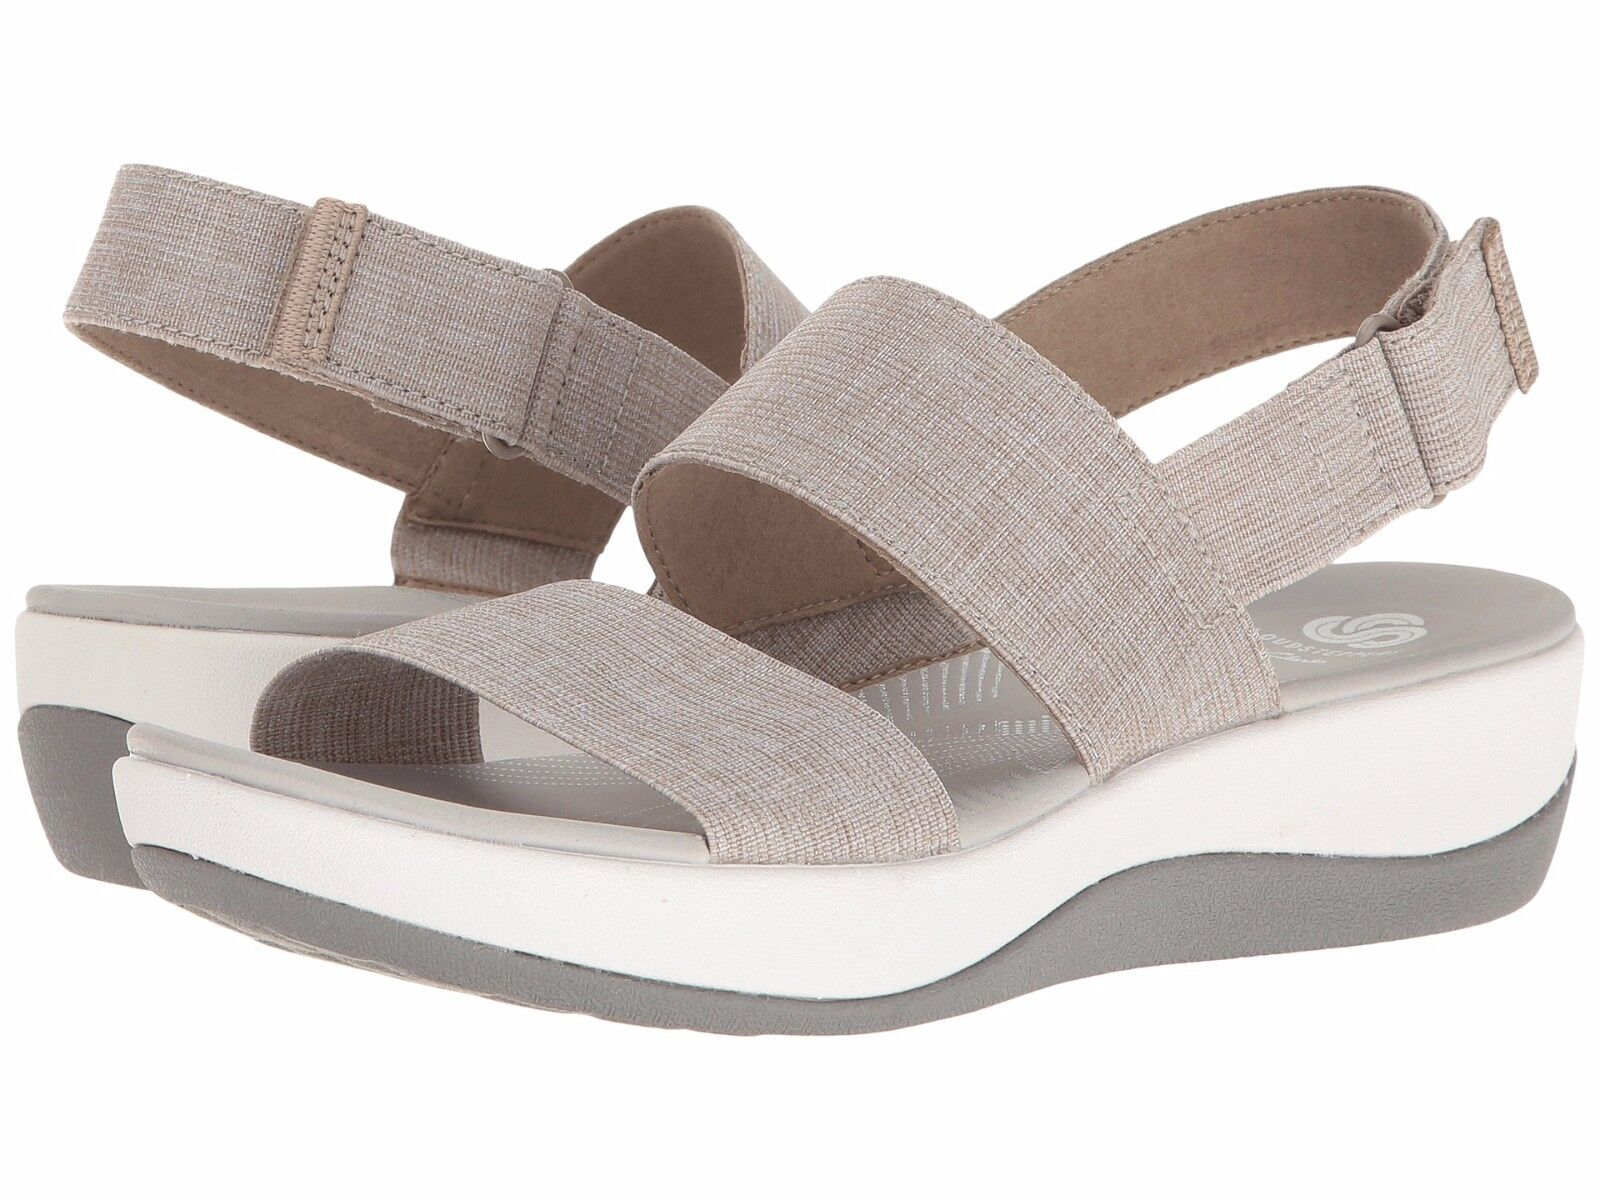 Women's Shoes Clarks Arla Jacory Casual Wedge Sandals 25965